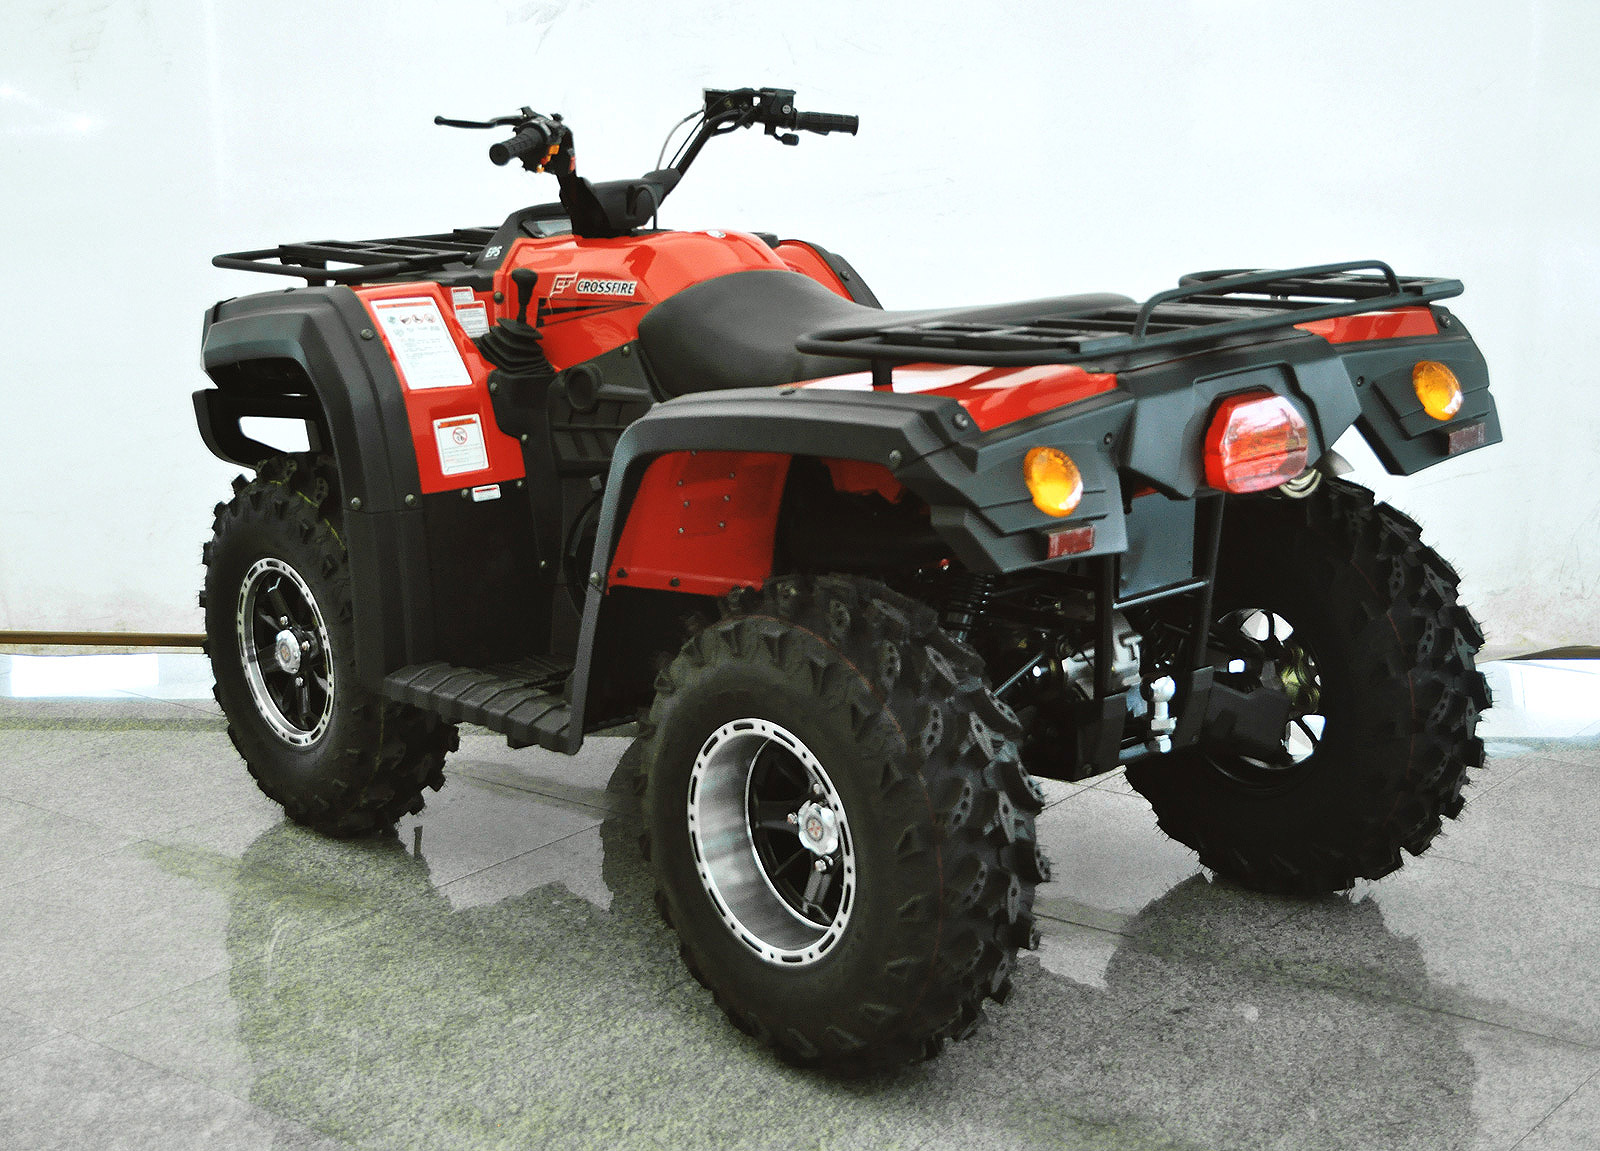 Top Tips to Maintain Your ATV in Top Shape